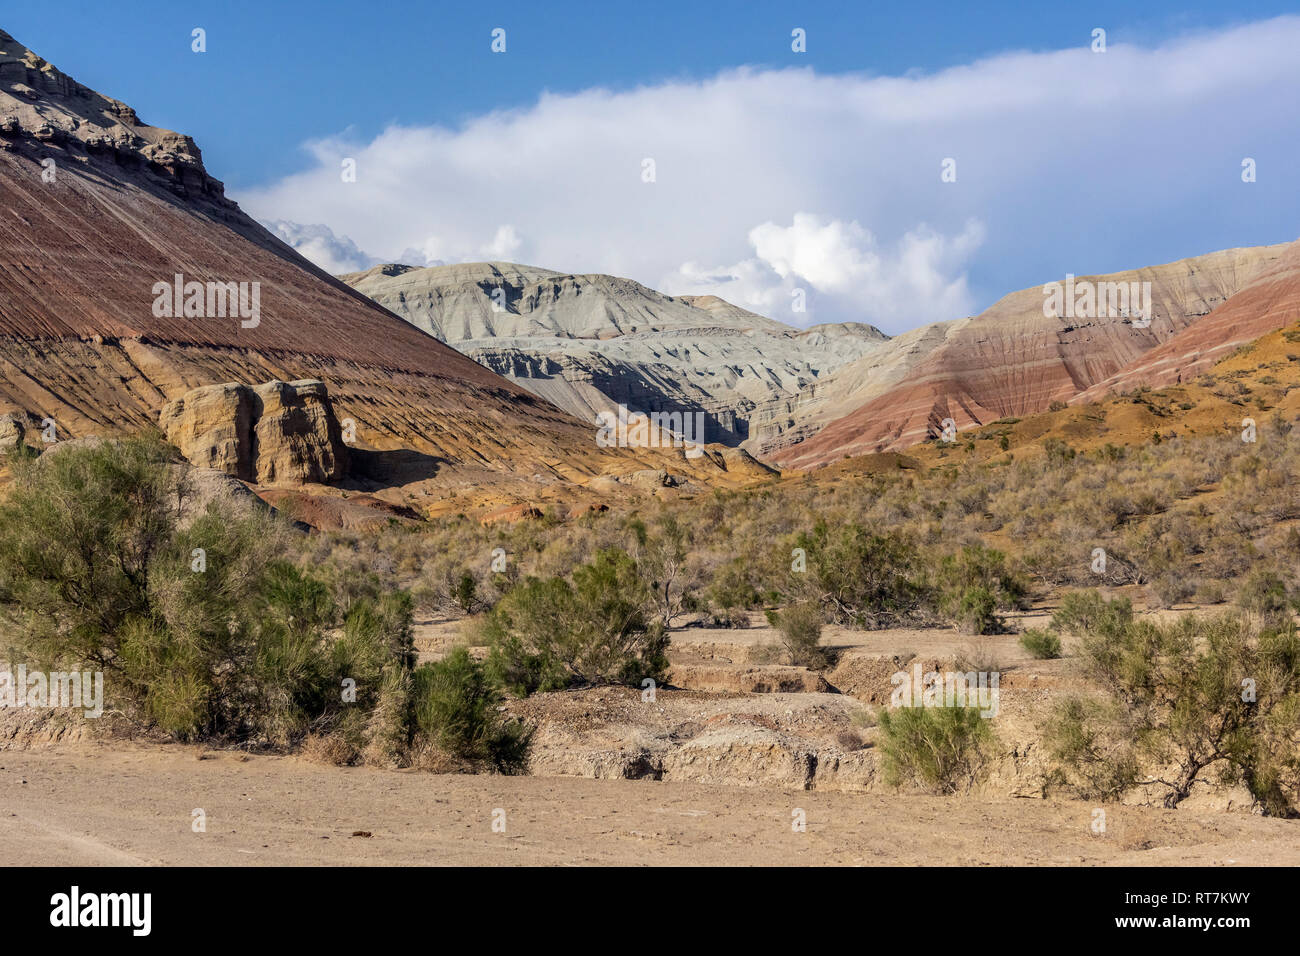 Valley with colourful clays and saxaul trees, Aktau Mountains, Altyn Emel National Park, Kazakhstan - Stock Image